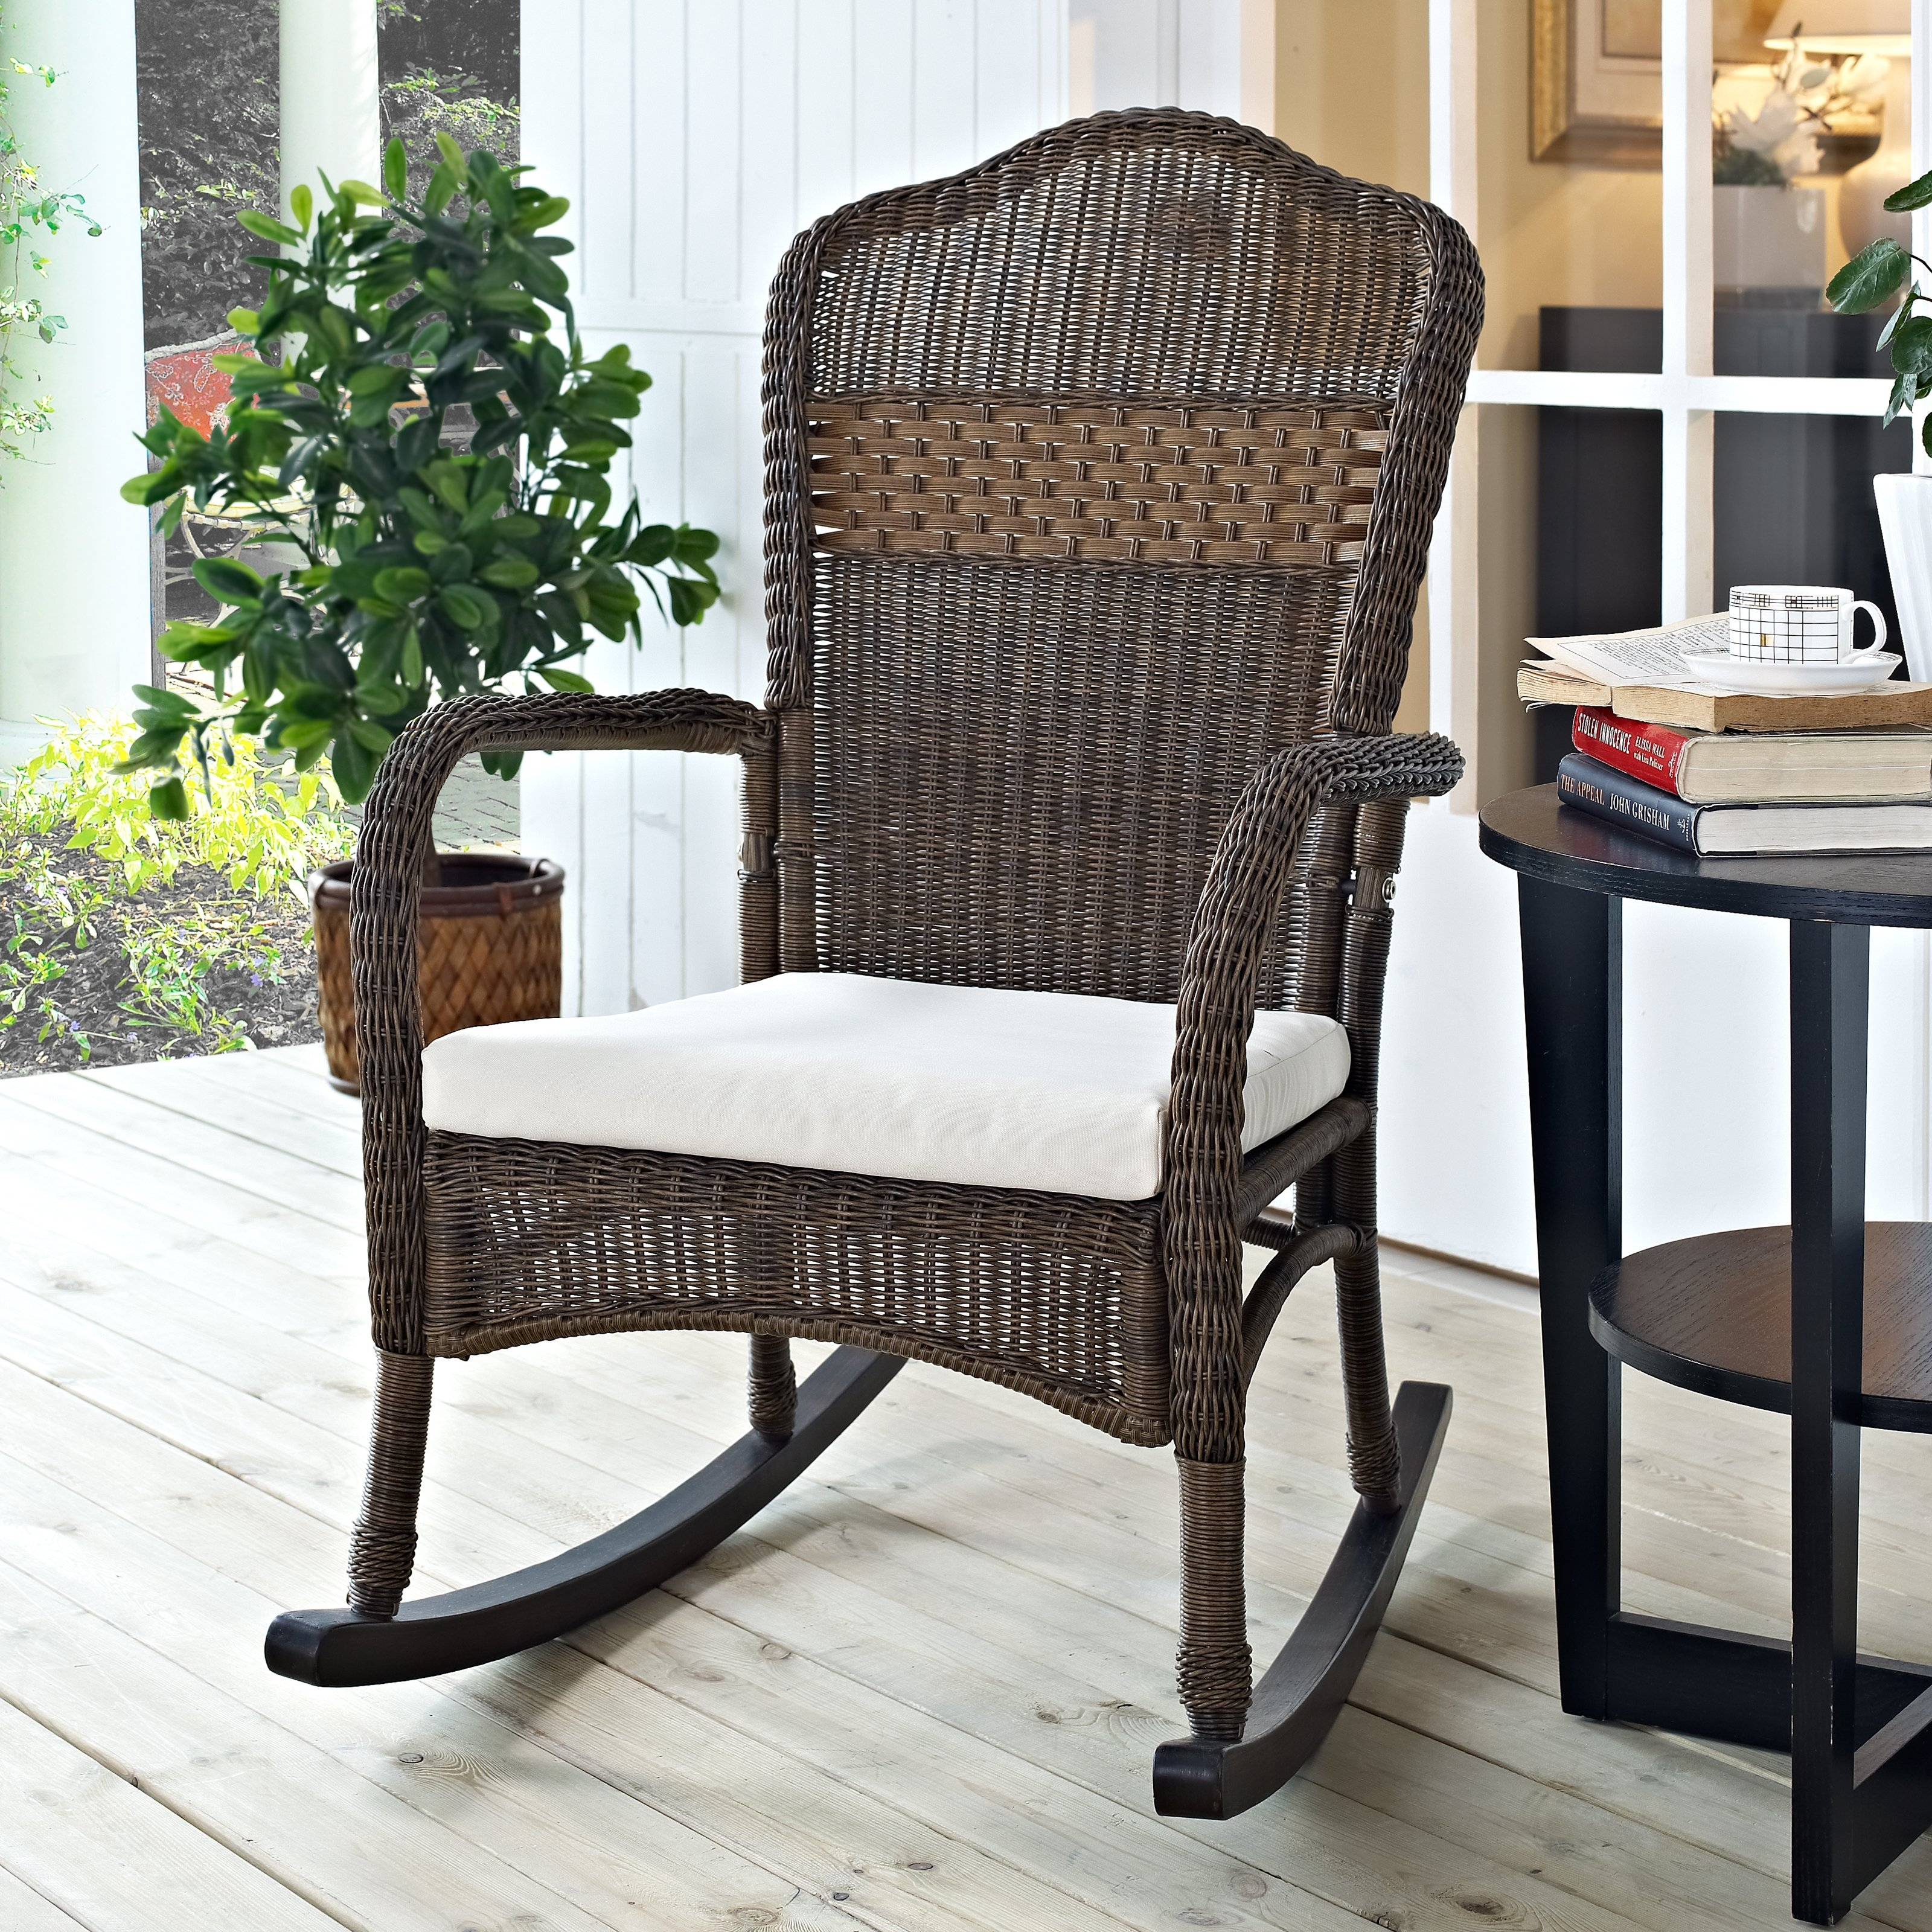 Inspiration about Lovely Patio Rocking Chairs Outdoor Rocking Chairs On Hayneedle Top Intended For Resin Wicker Patio Rocking Chairs (#8 of 15)